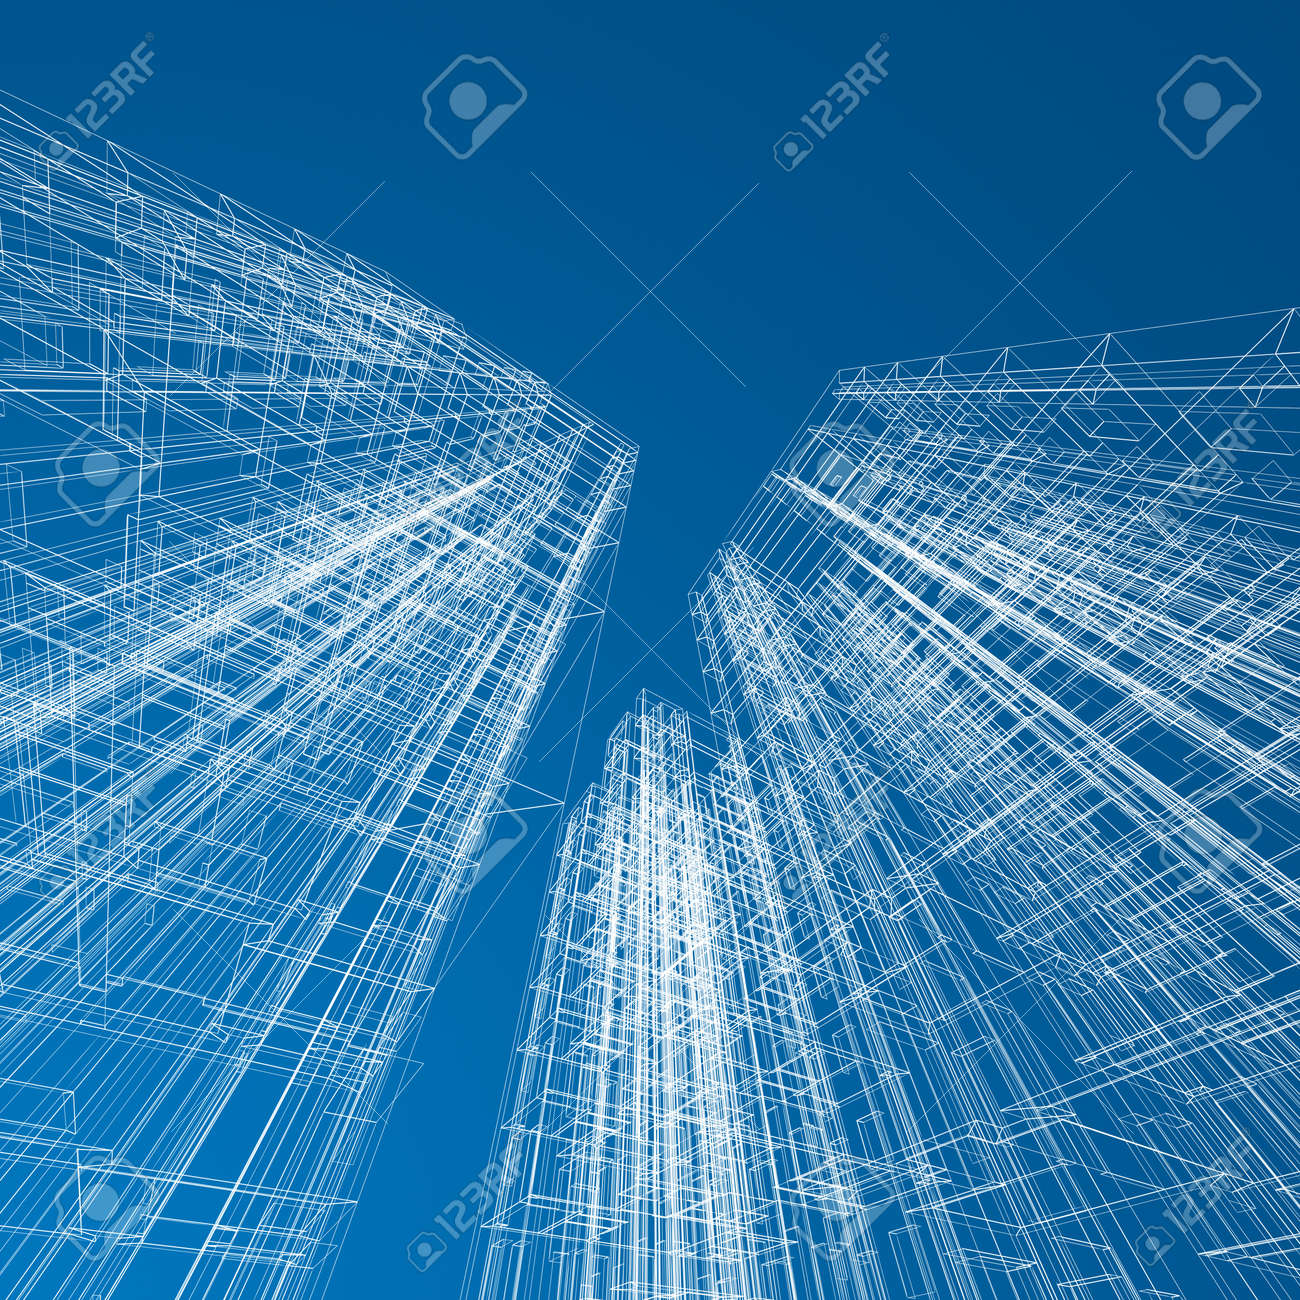 Concept skyscrapers blueprint architecture design and 3d model my own stock photo 17512464